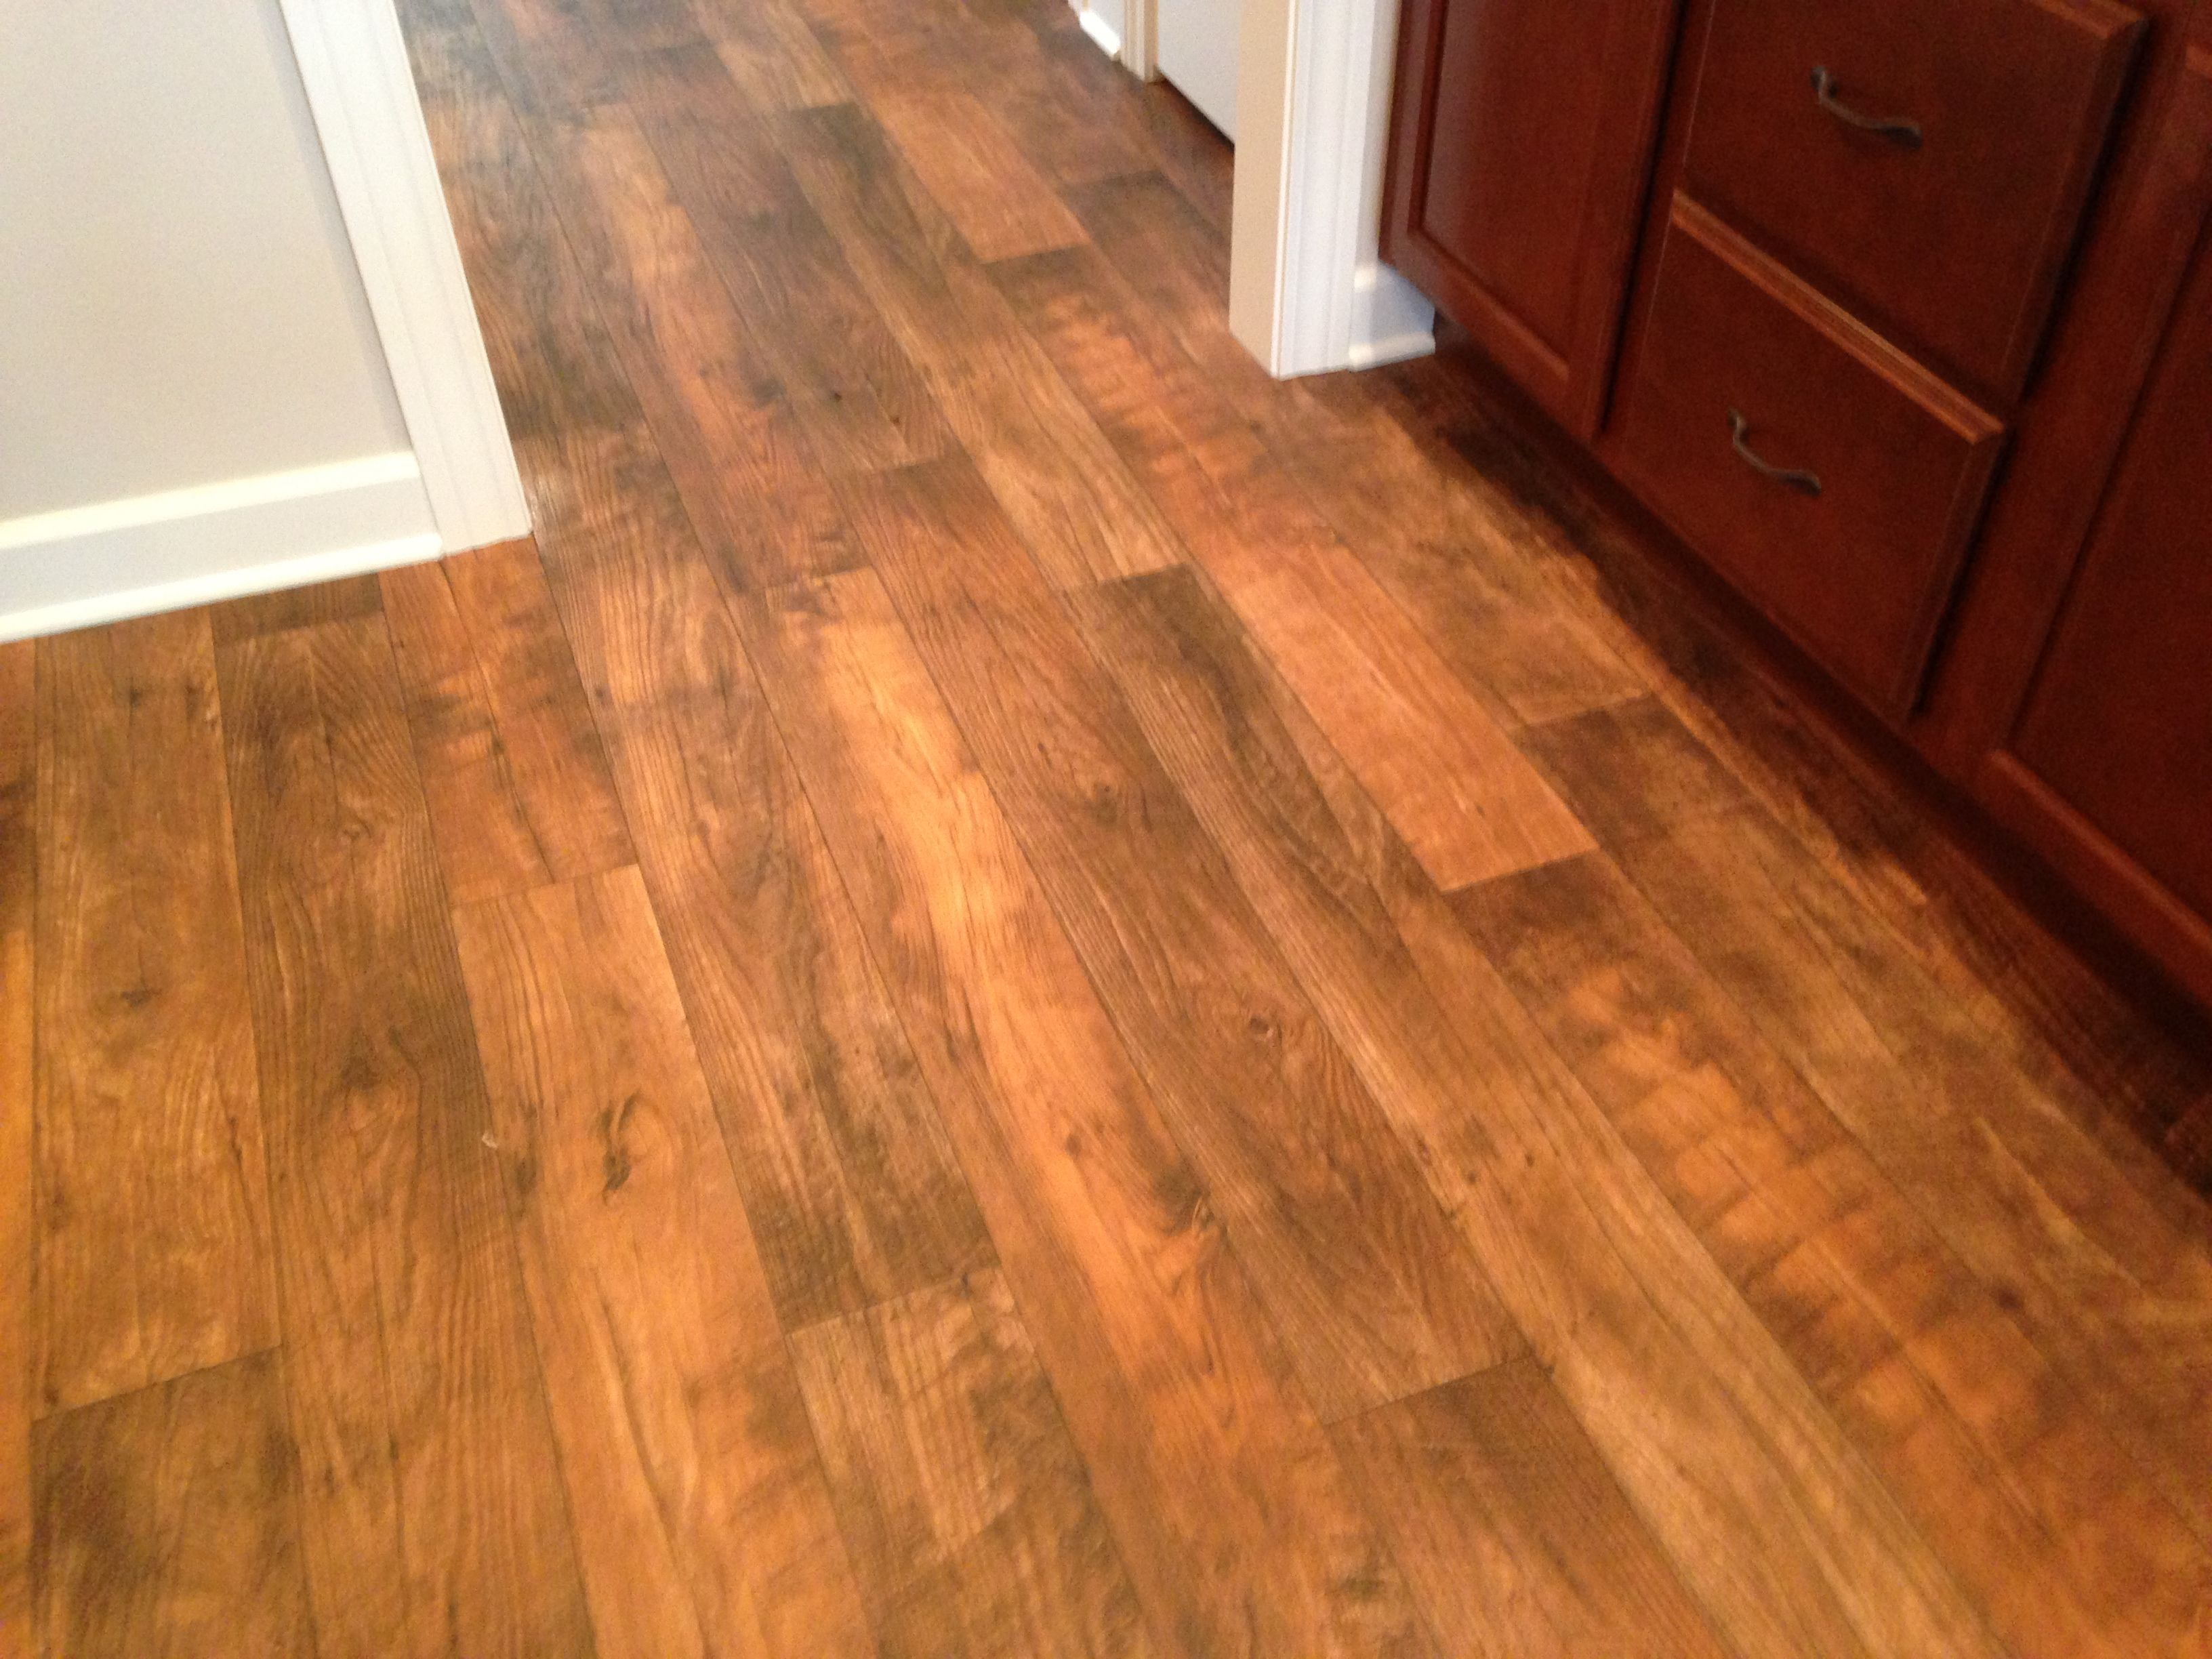 Best 25 linoleum flooring ideas on pinterest wood linoleum flooring sheet linoleum and wood - Vinyl deck tiles ...